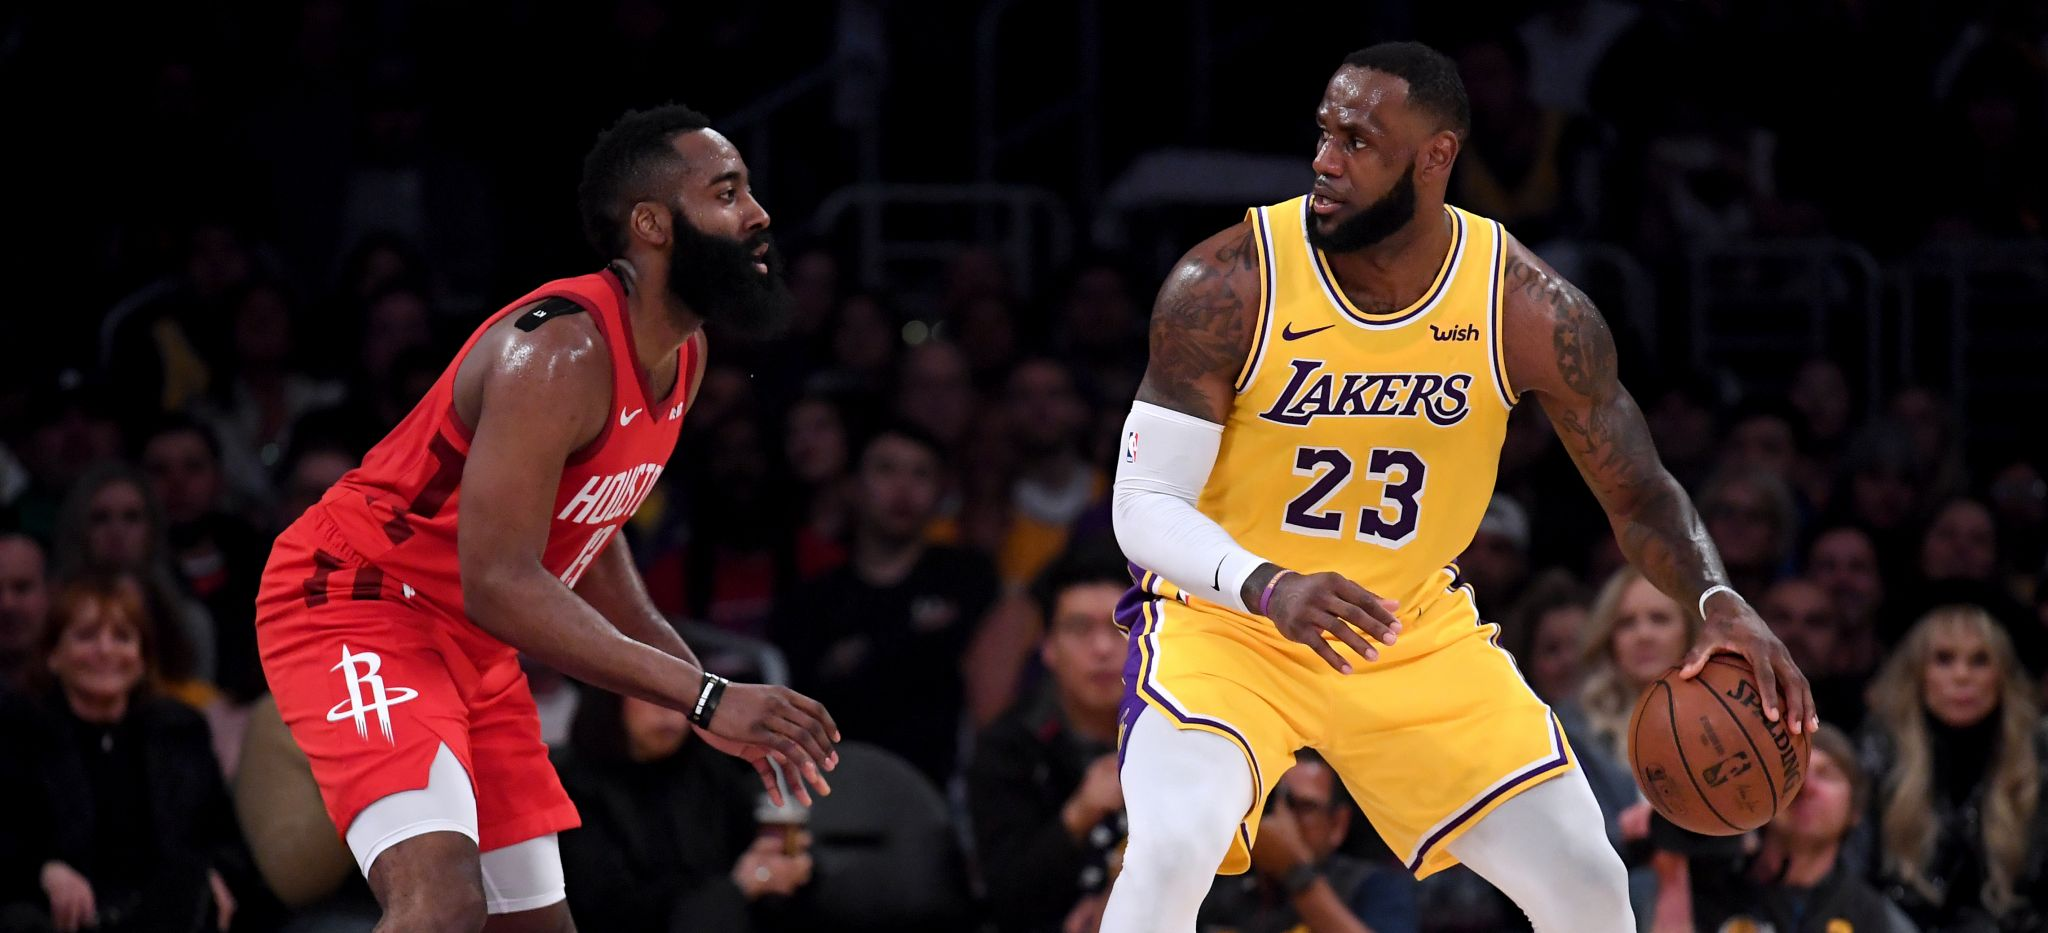 Scouting report: Rockets vs. Lakers